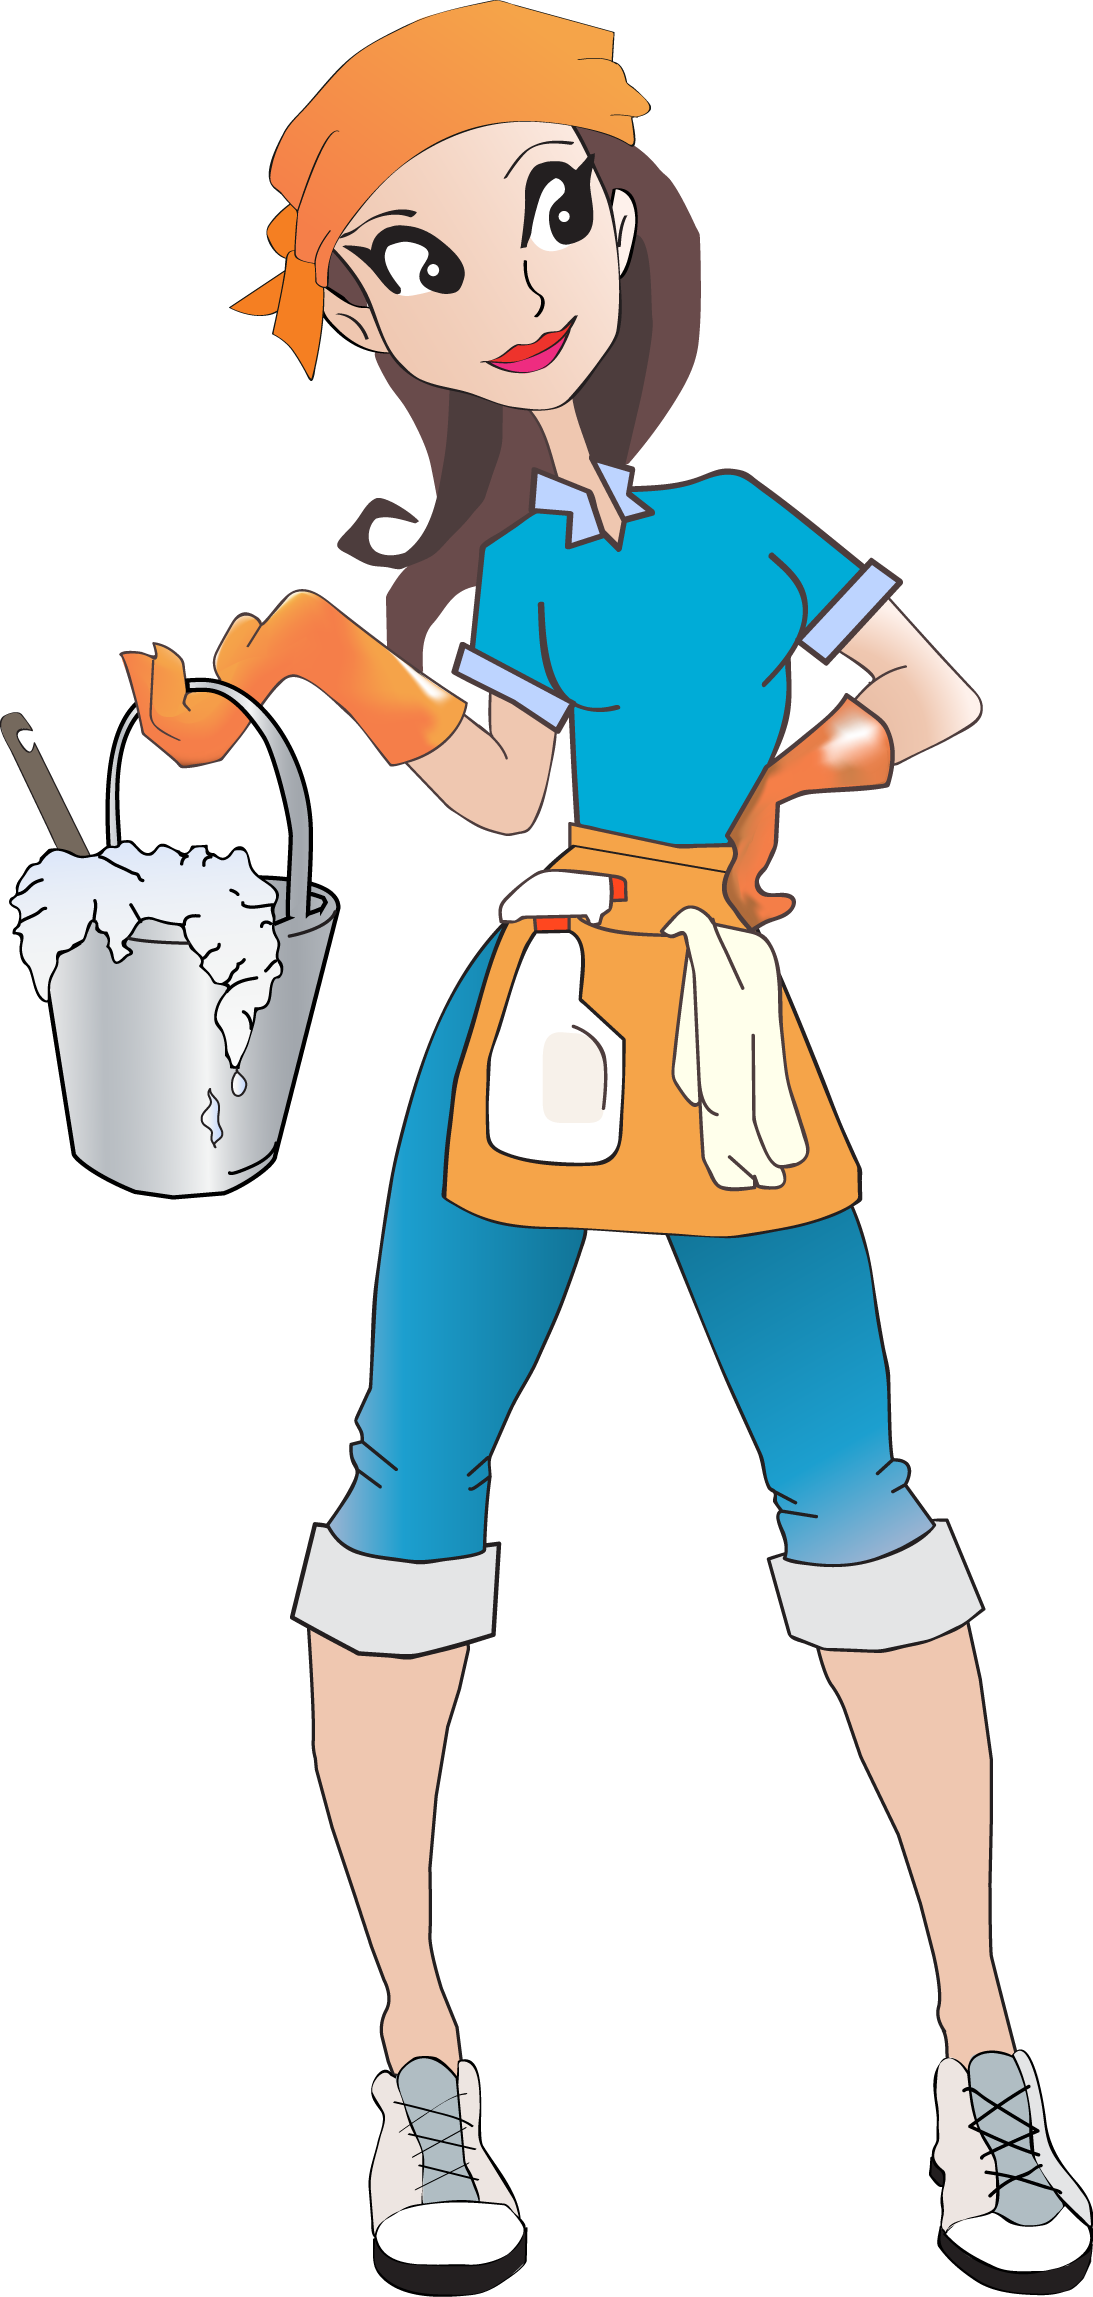 Center clipart housekeeping center. House and home cleaning